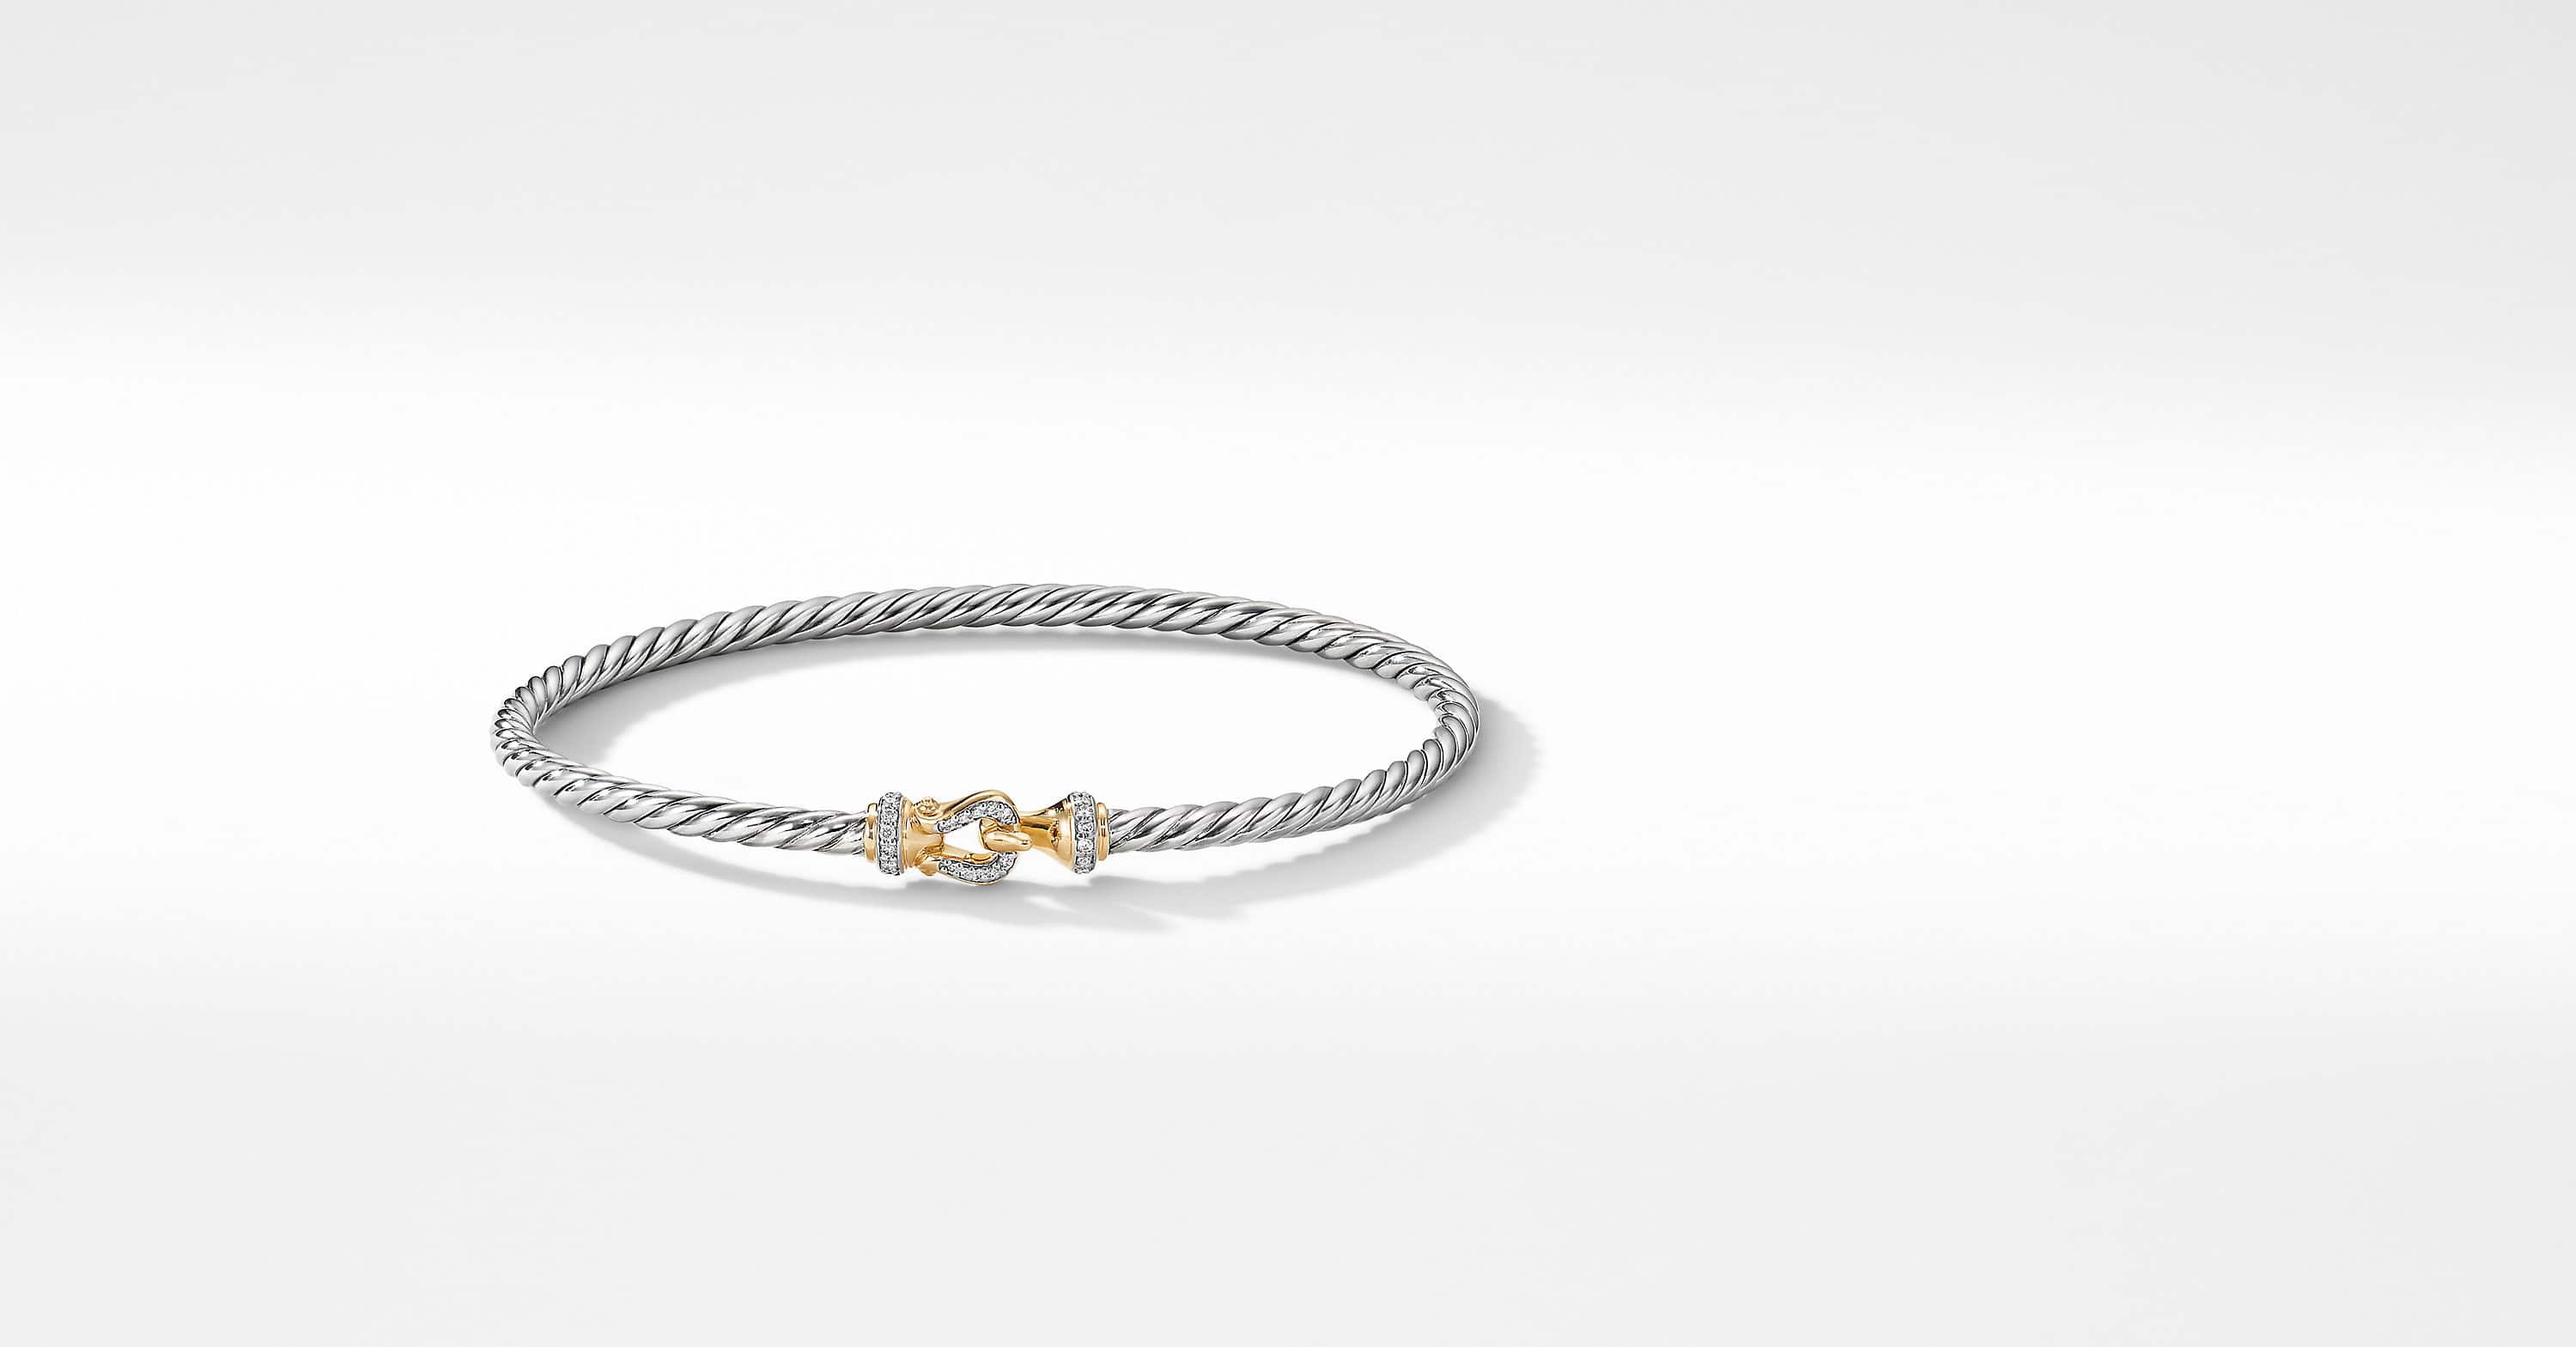 Bracelet Cable Buckle Collection avec or jaune 18 carats et diamants, 3 mm